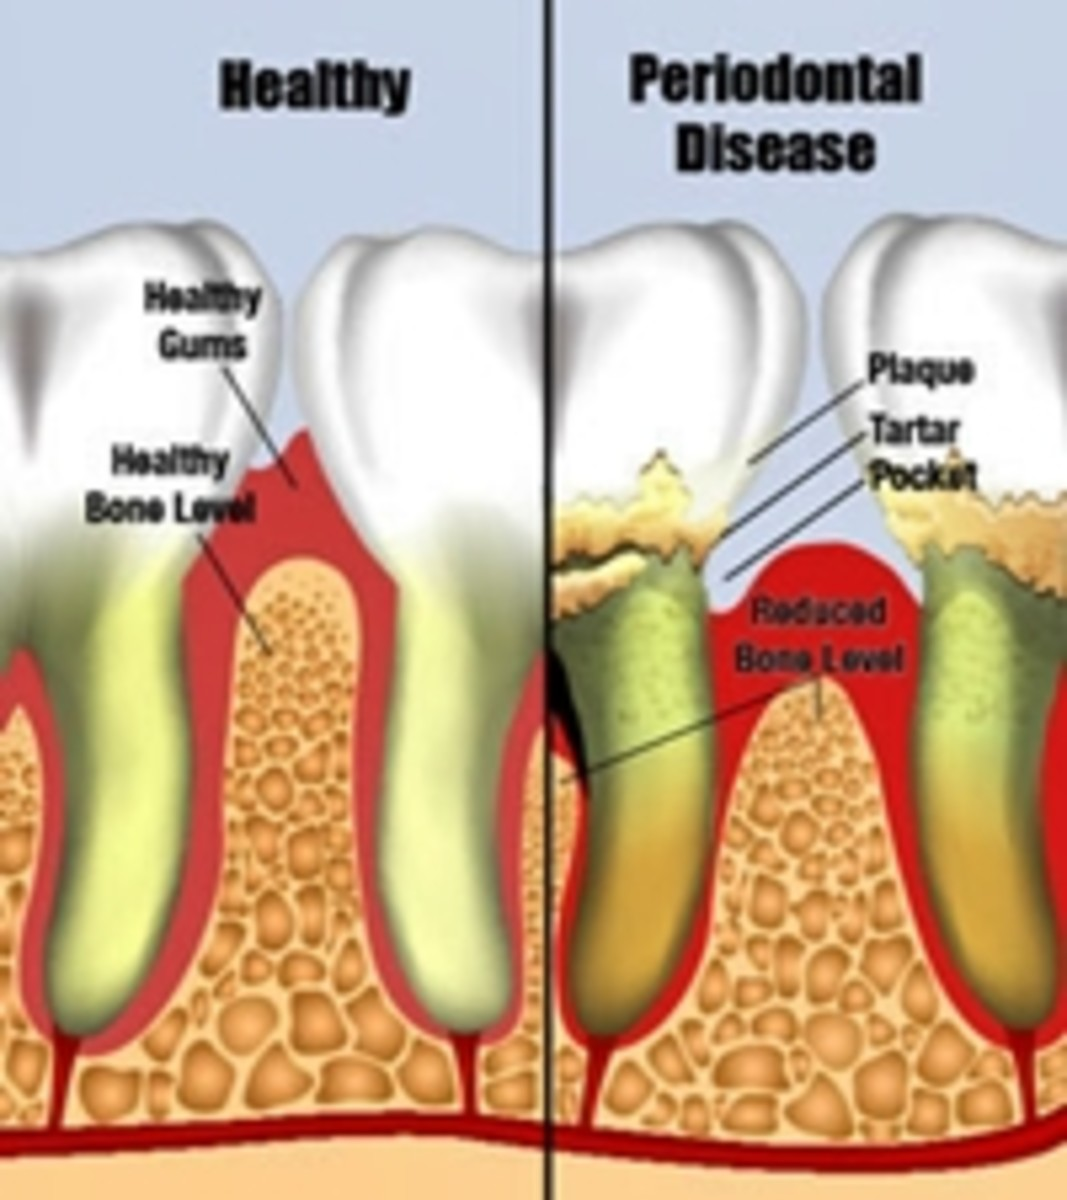 The picture on the left shows healthy teeth and gums,check for the symptoms of gum disease and visit your dentist if you spot any problems.